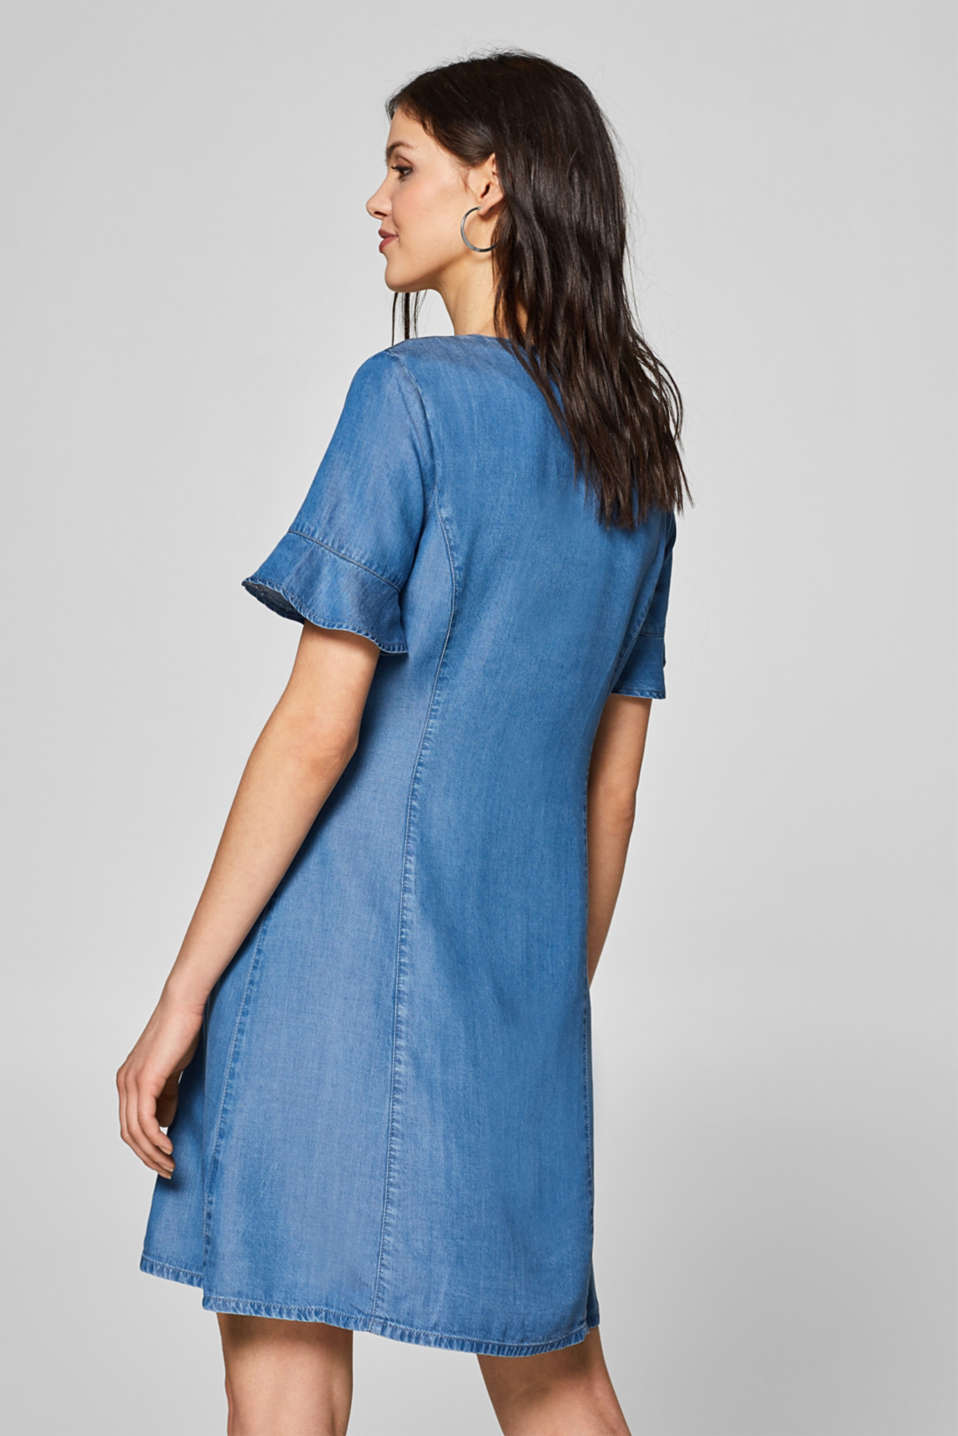 Denim dress with flounce sleeves, 100% lyocell, BLUE MEDIUM WASH, detail image number 2